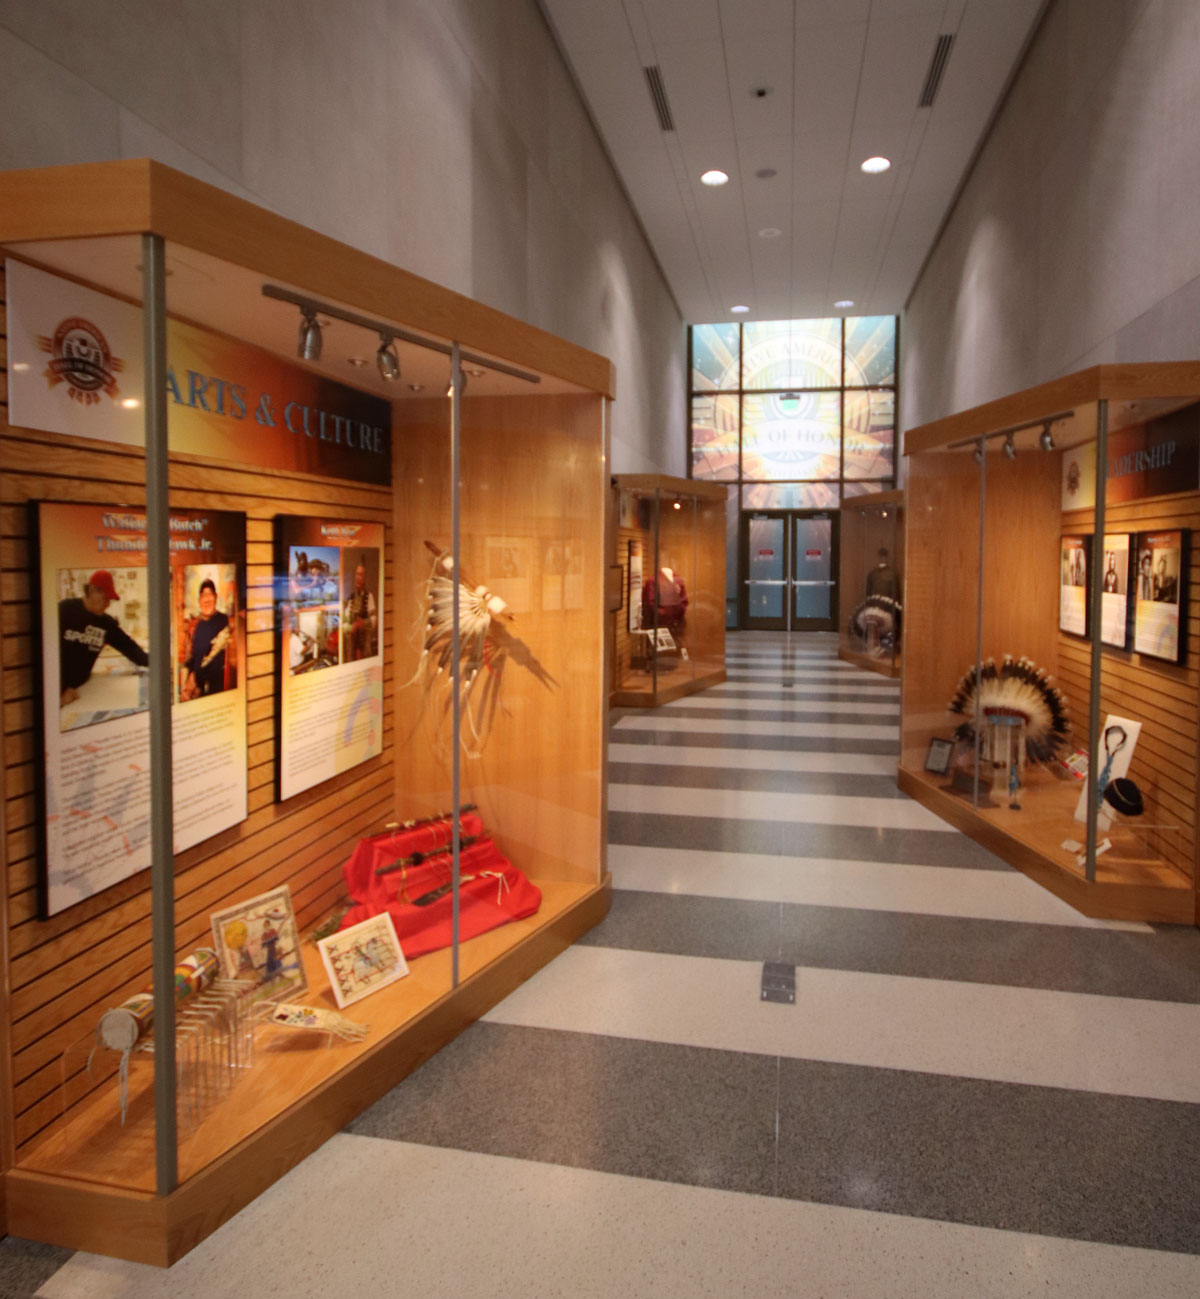 Hallway with exhibit cases with images of Native Americans and artifacts relating to those pictured